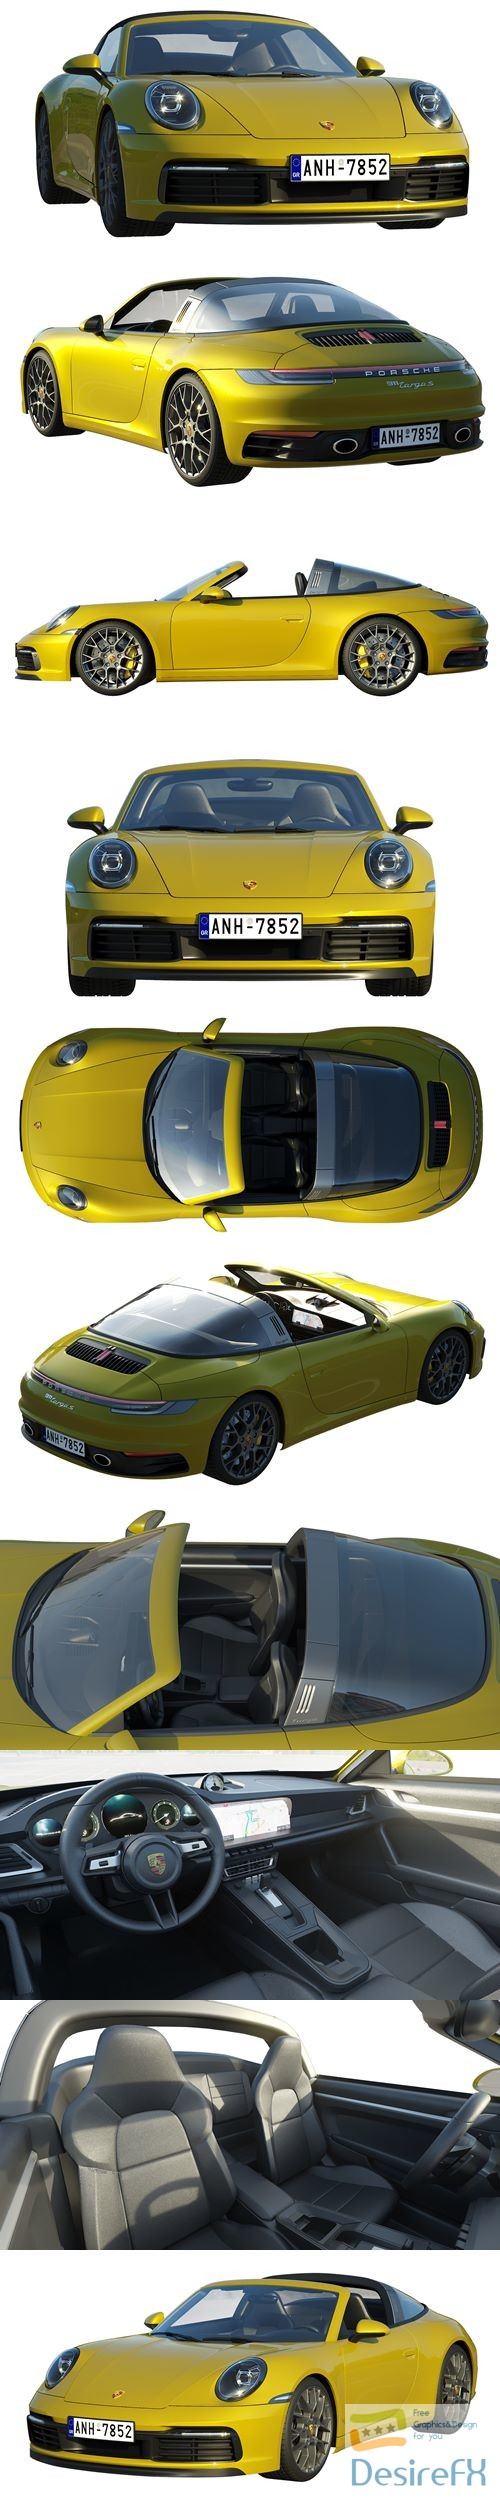 3d-models - Porsche 911 Targa 2019 3D Model